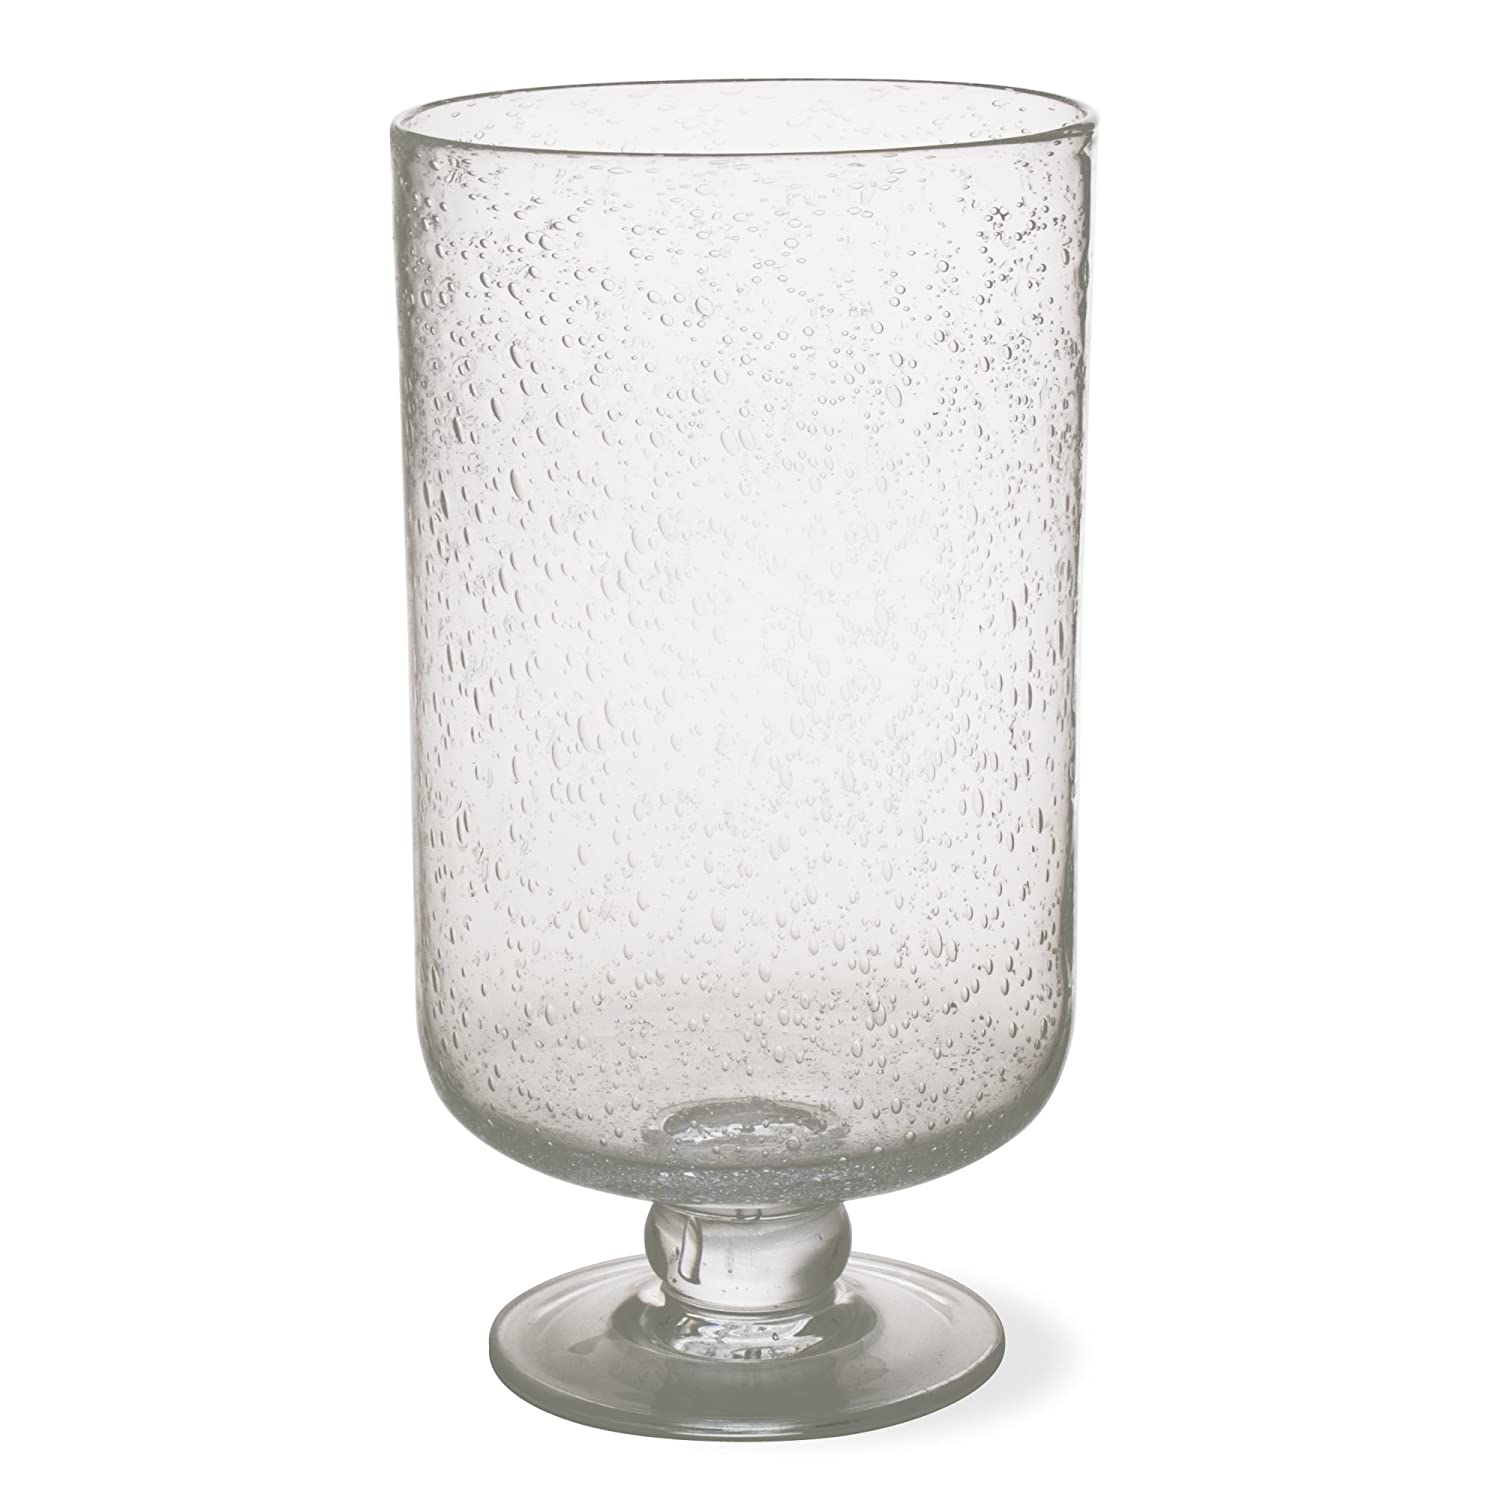 Tag 750305 11.75 by 6.25-Inch Bubble Glass Hurricane, Large, Clear